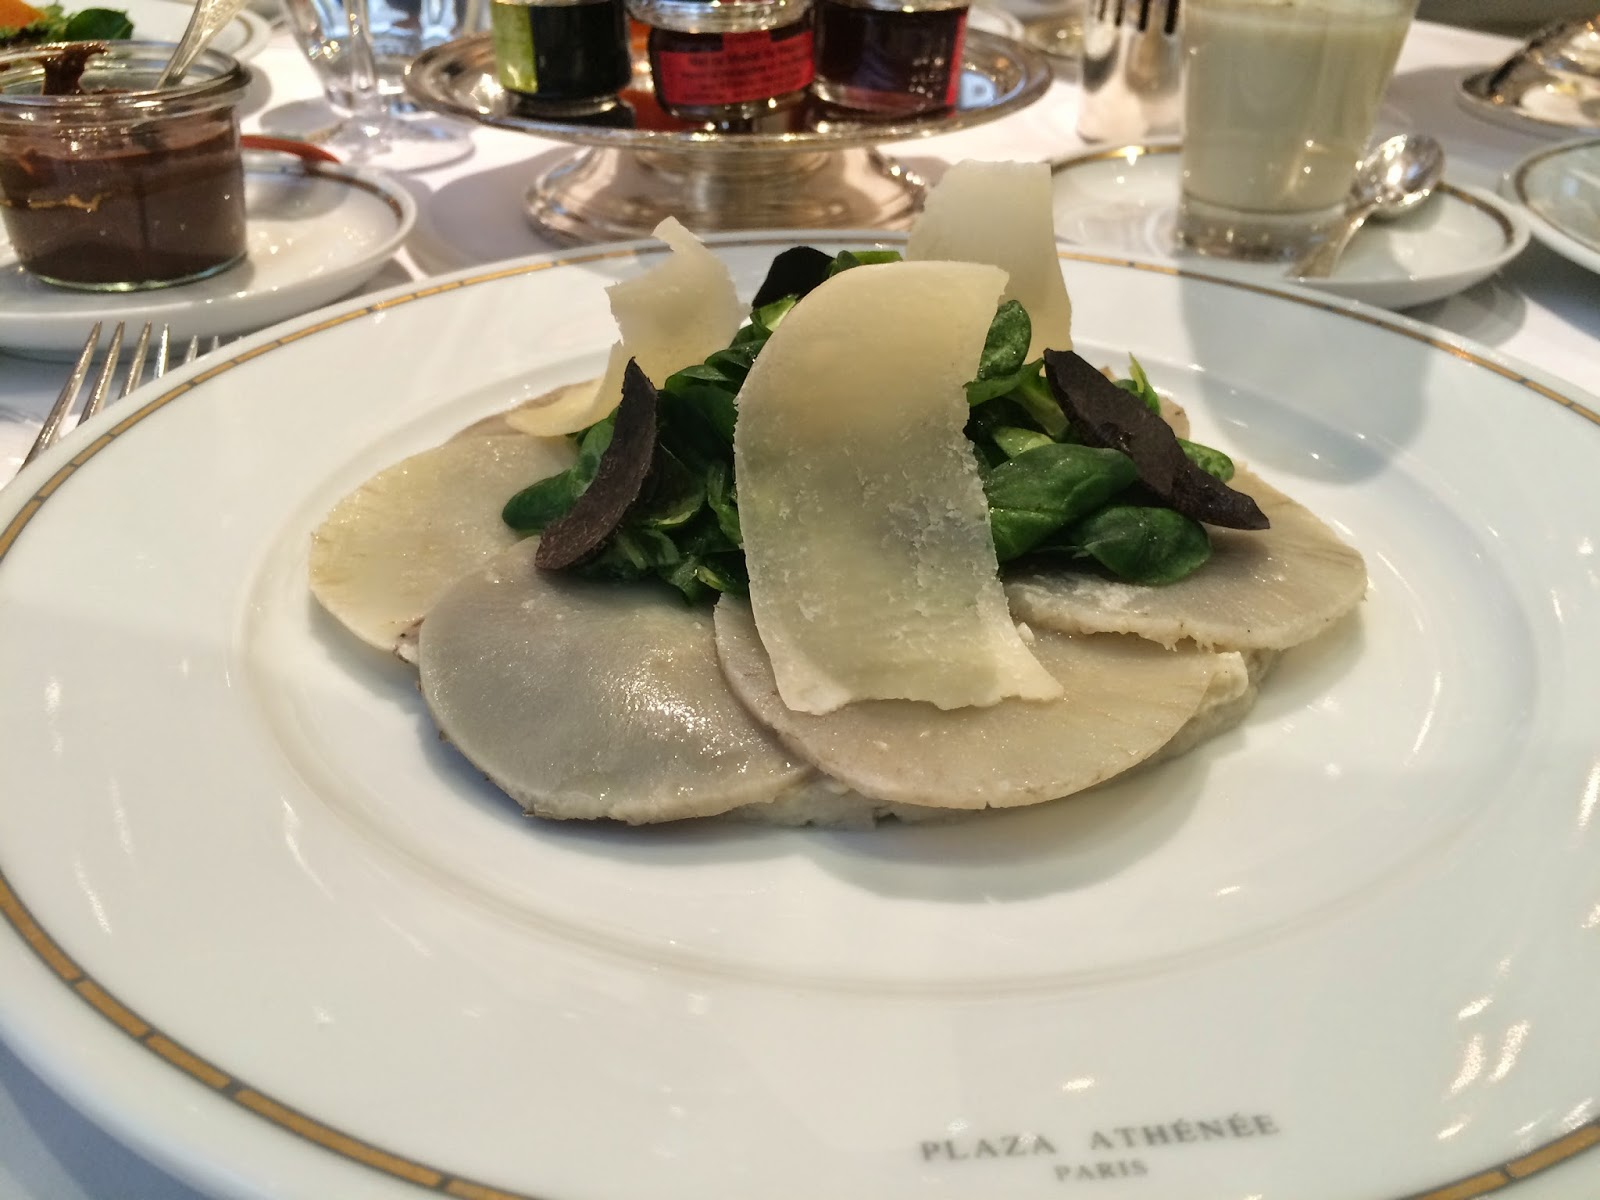 Brittany artichokes at the Haute Couture Brunch, Alain Ducasse au Plaza Athénée, Paris